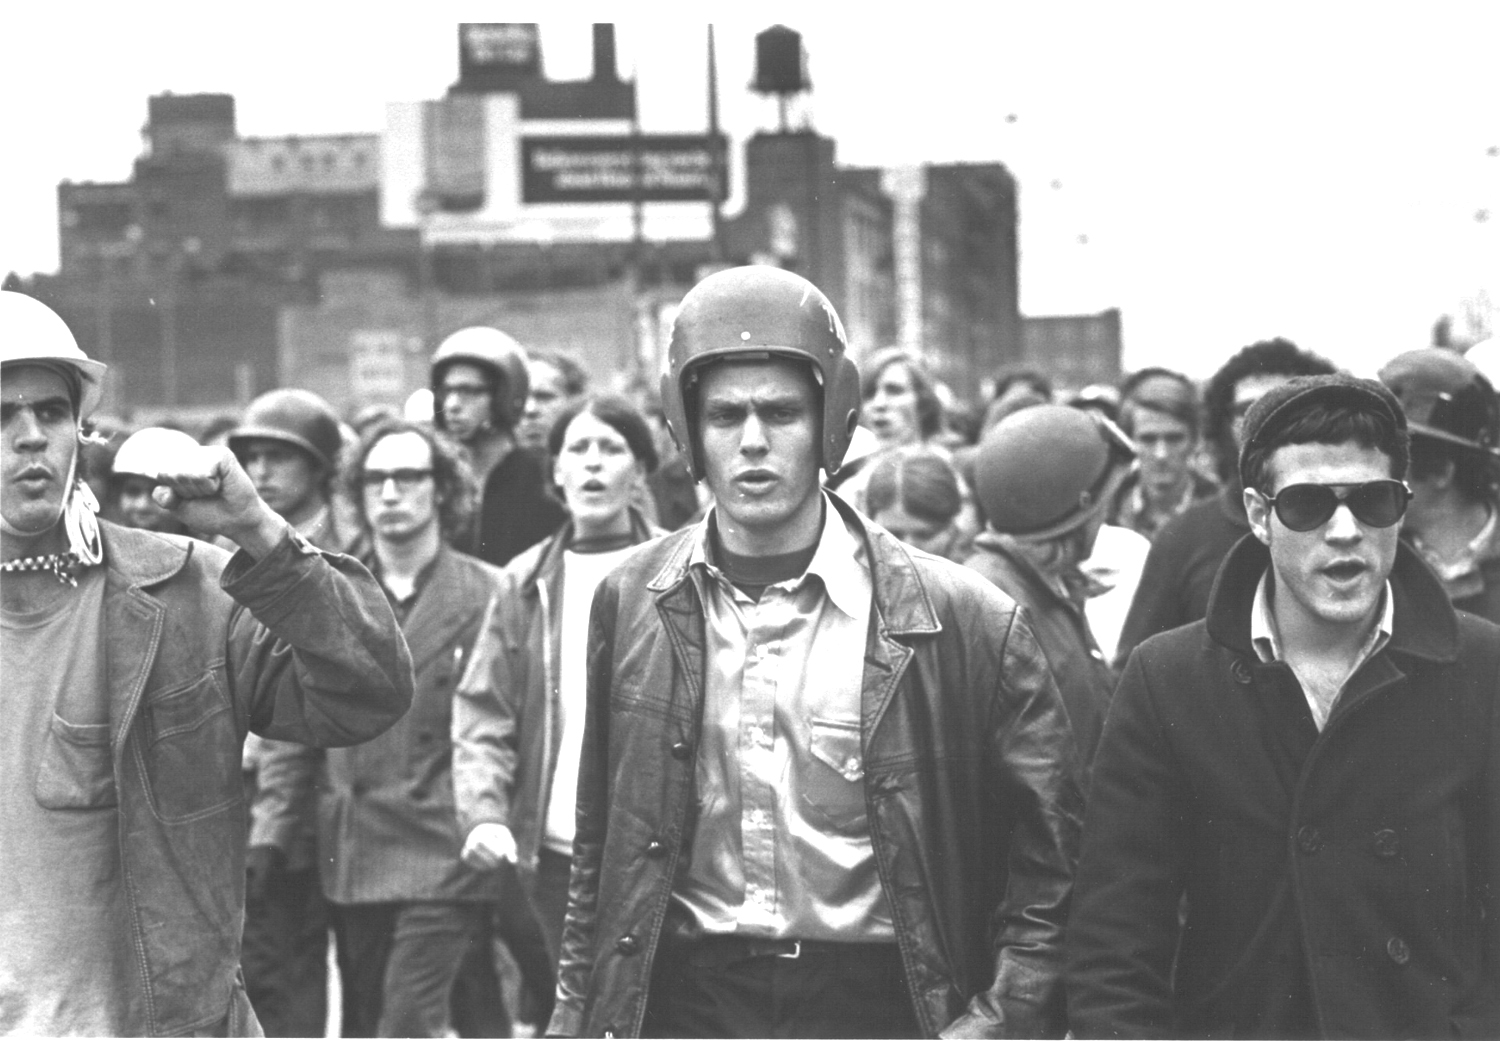 John Jacobs (l) and Terry Robbins (r) at the Days of Rage, Chicago, October 1969. Their group, the Weathermen, were a conspicuous domestic terrorism problem in the early 1970s. (Photo: David Fenton, ITV)